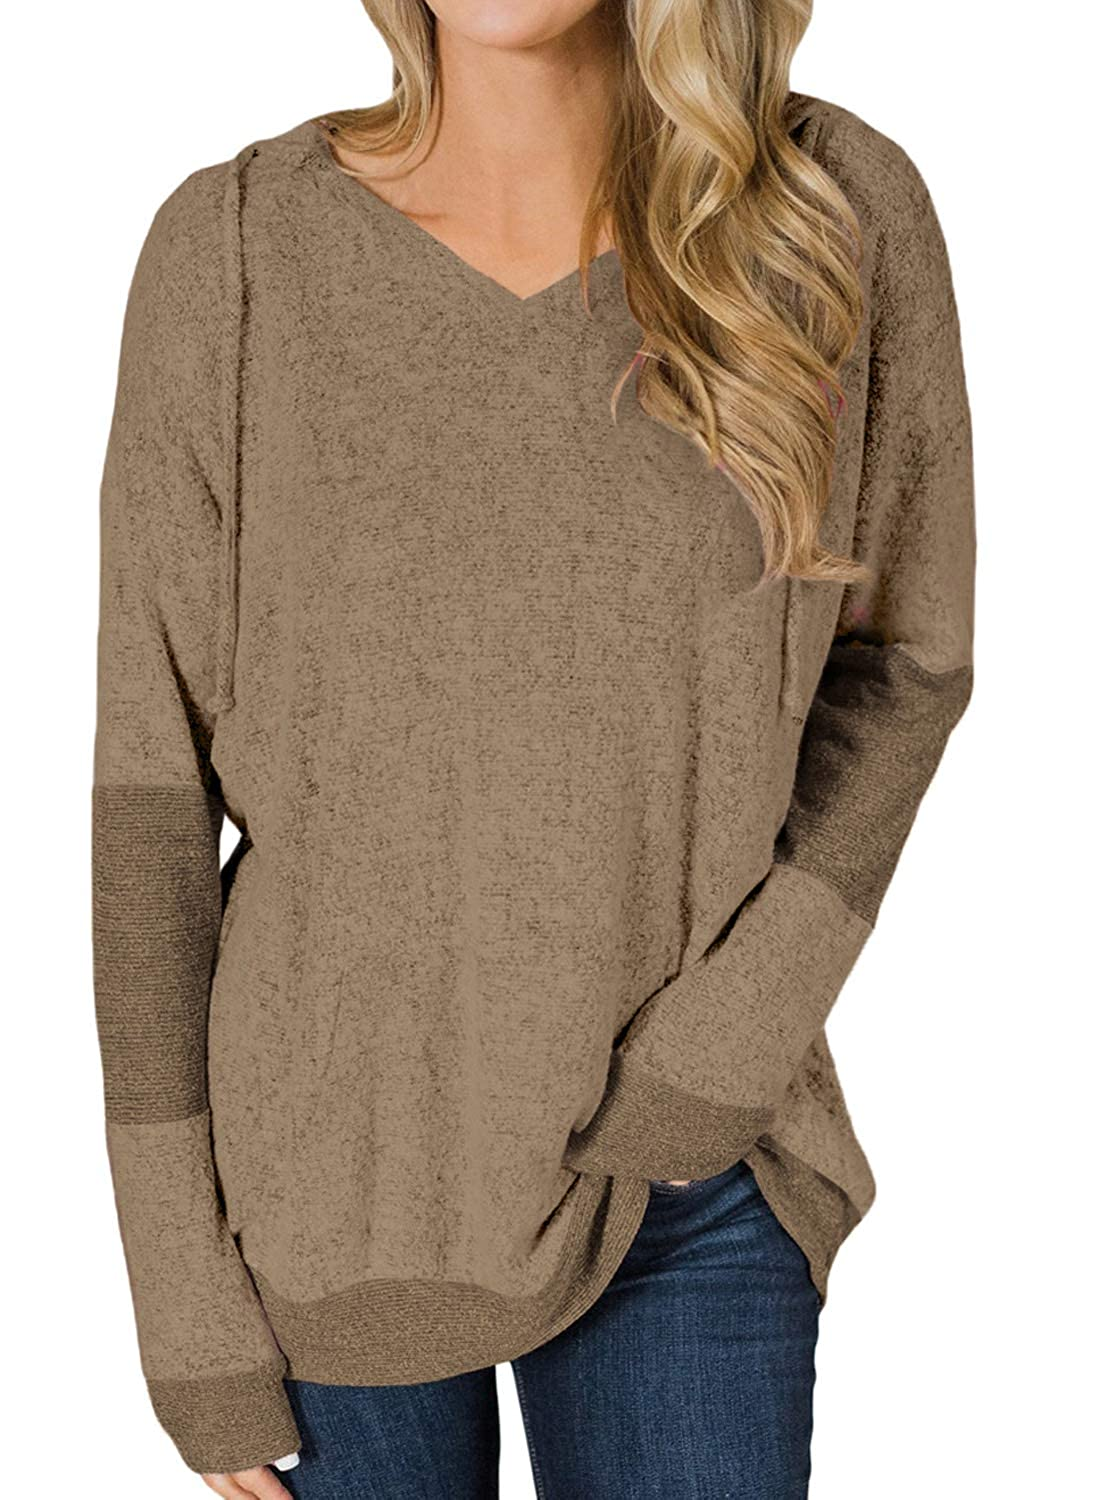 7a9b966dc HOTAPEI Womens Sweaters Casual Oversized Baggy Color Block Shirts Long  Sleeve Pullover Hoodie Tops at Amazon Women's Clothing store: